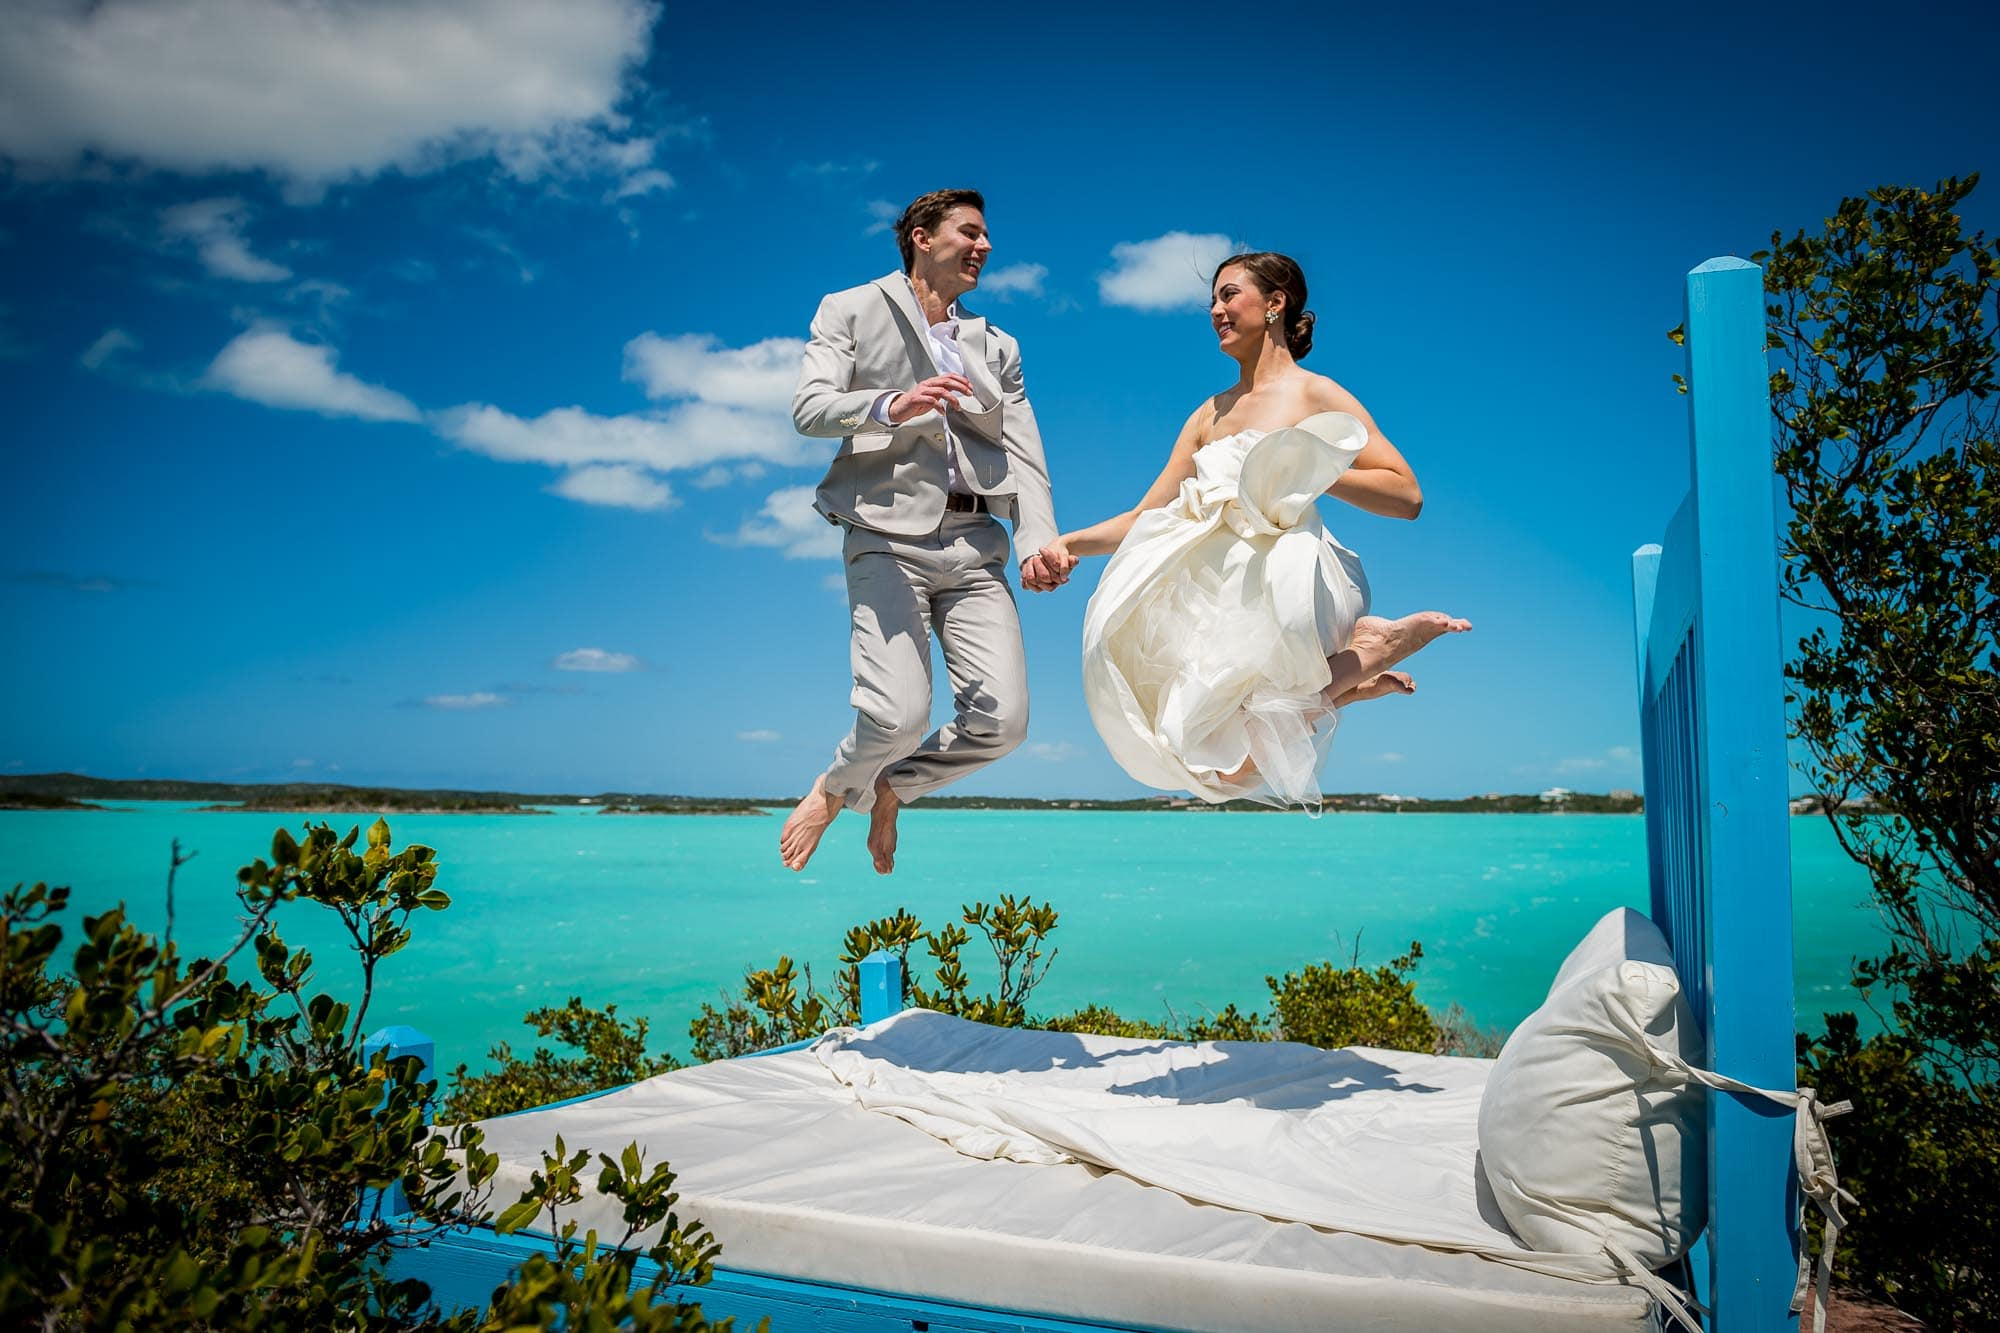 destination wedding photography of a bride and groom jumping on an outdoor bed over the brilliant blue water of Chalk Sound on the island of Turks and Caicos